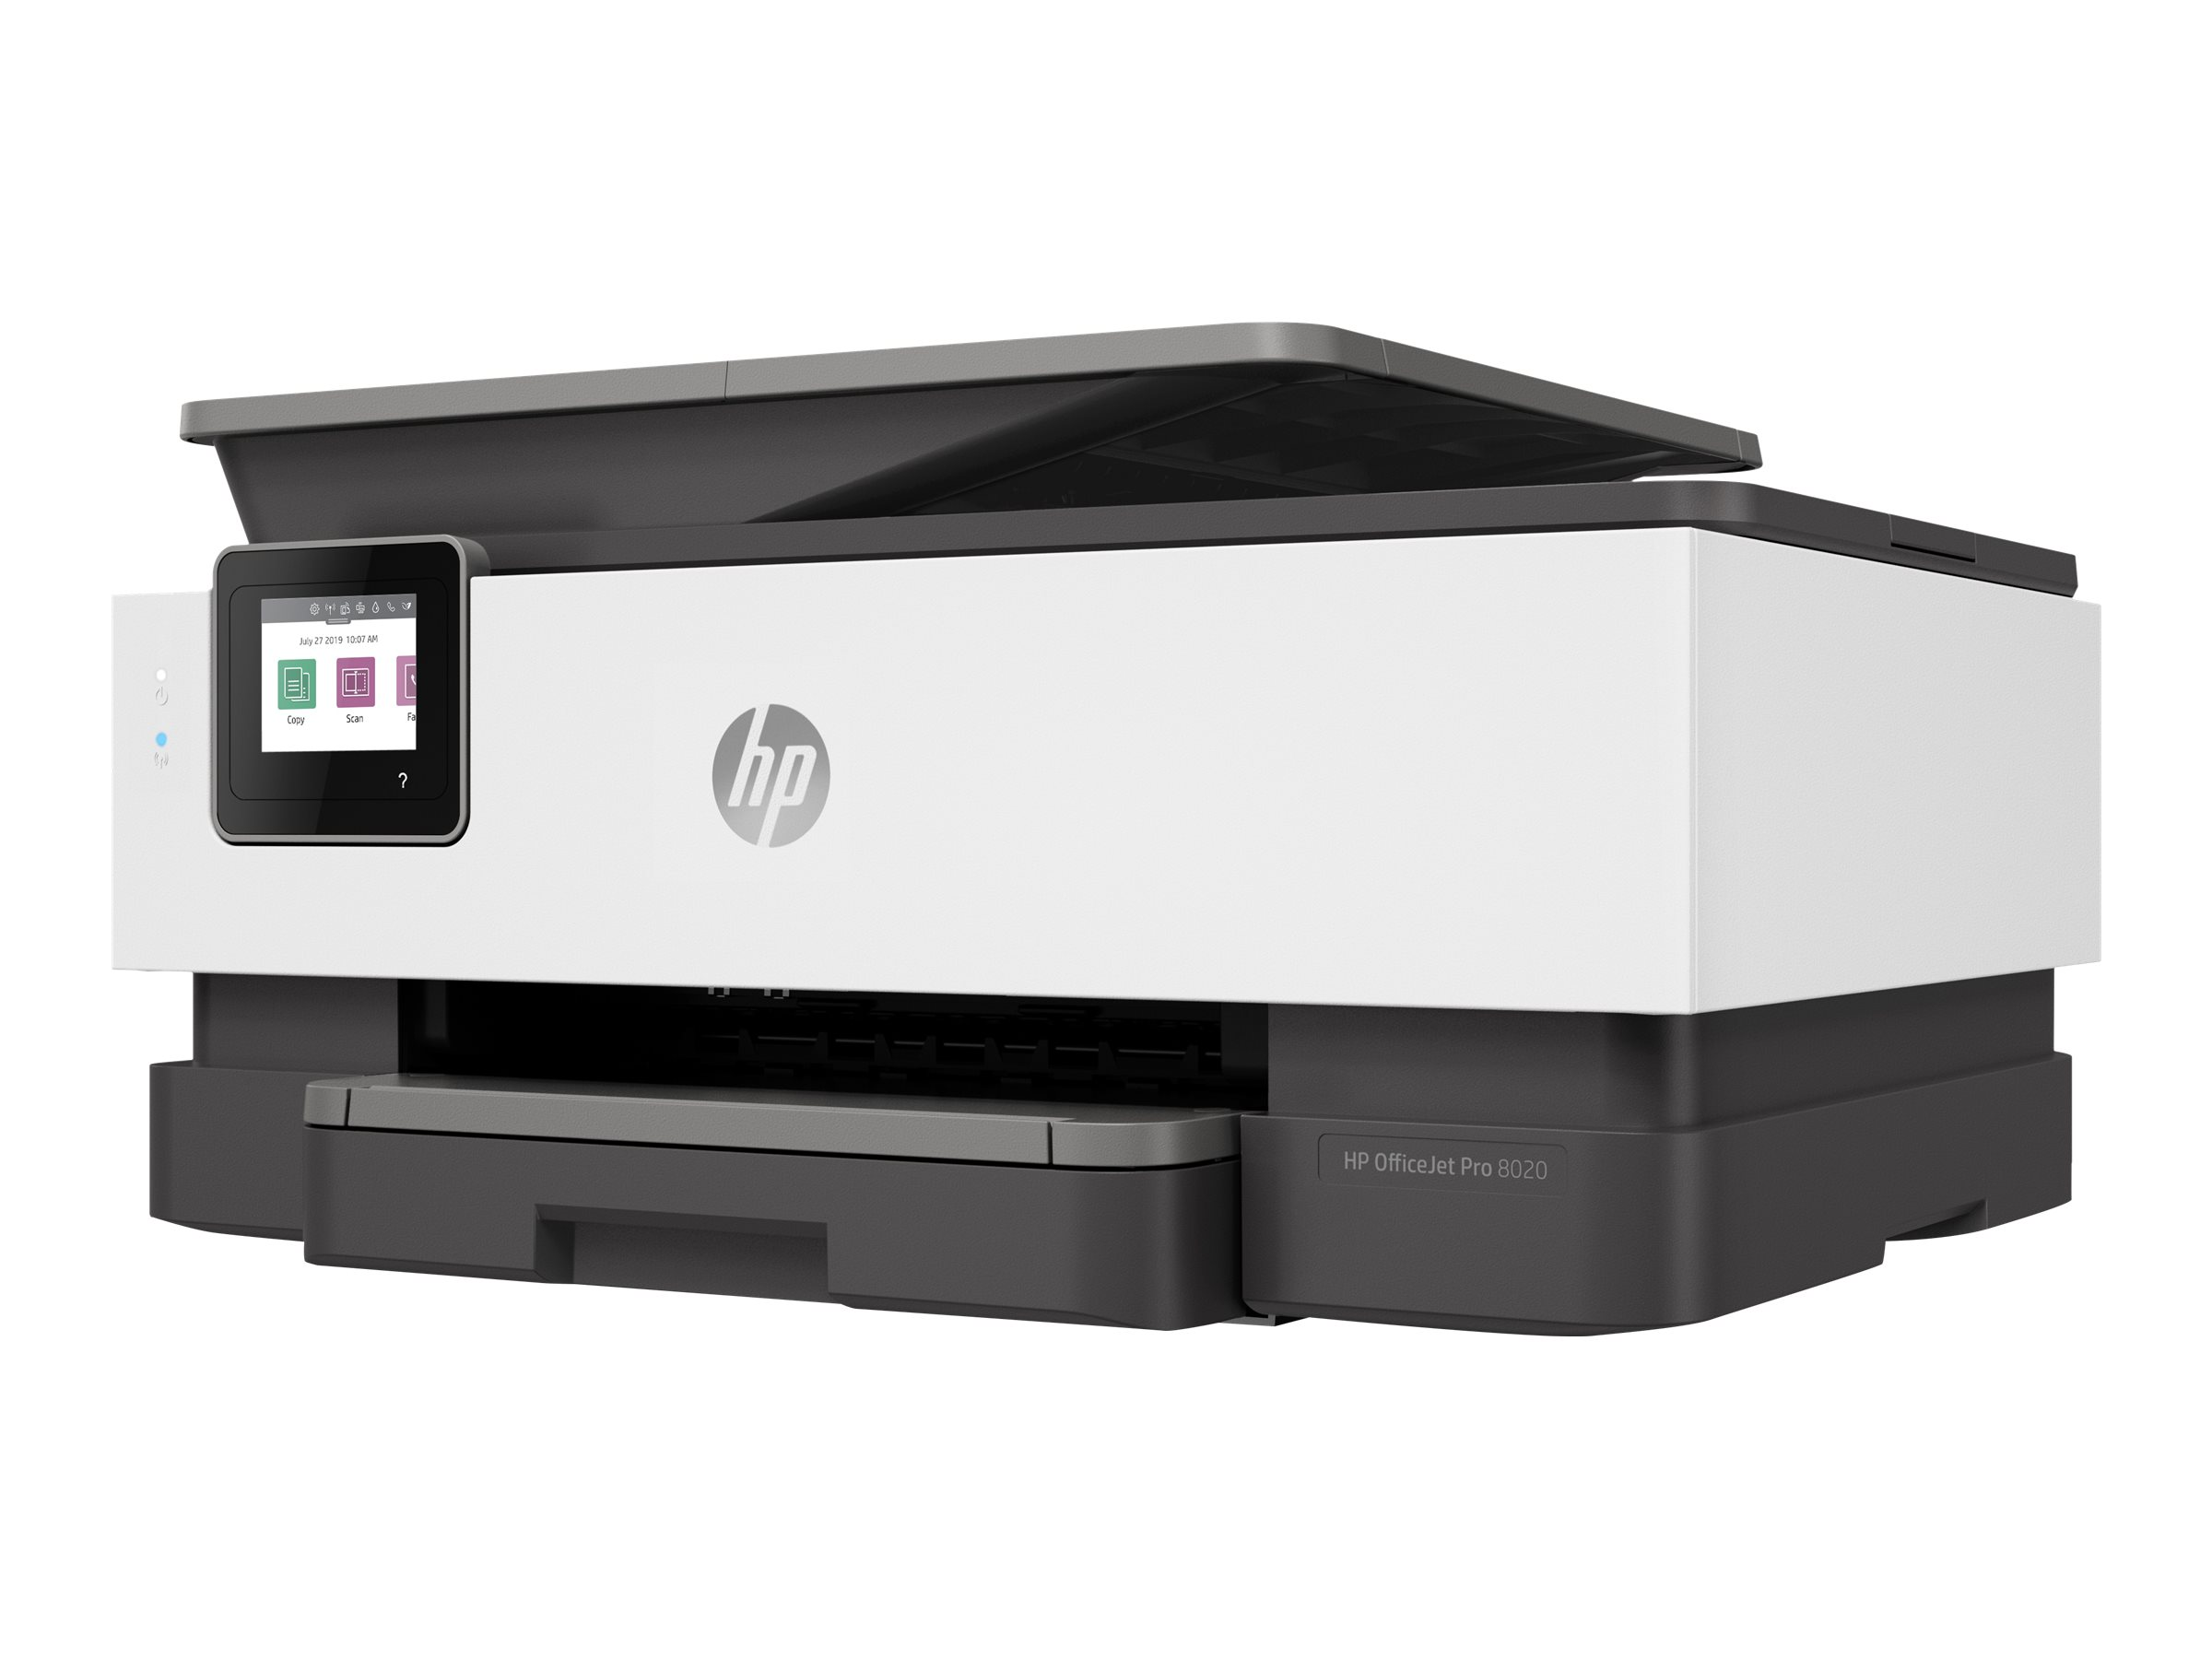 HP Officejet Pro 8020 All-in-One - multifunction printer - color